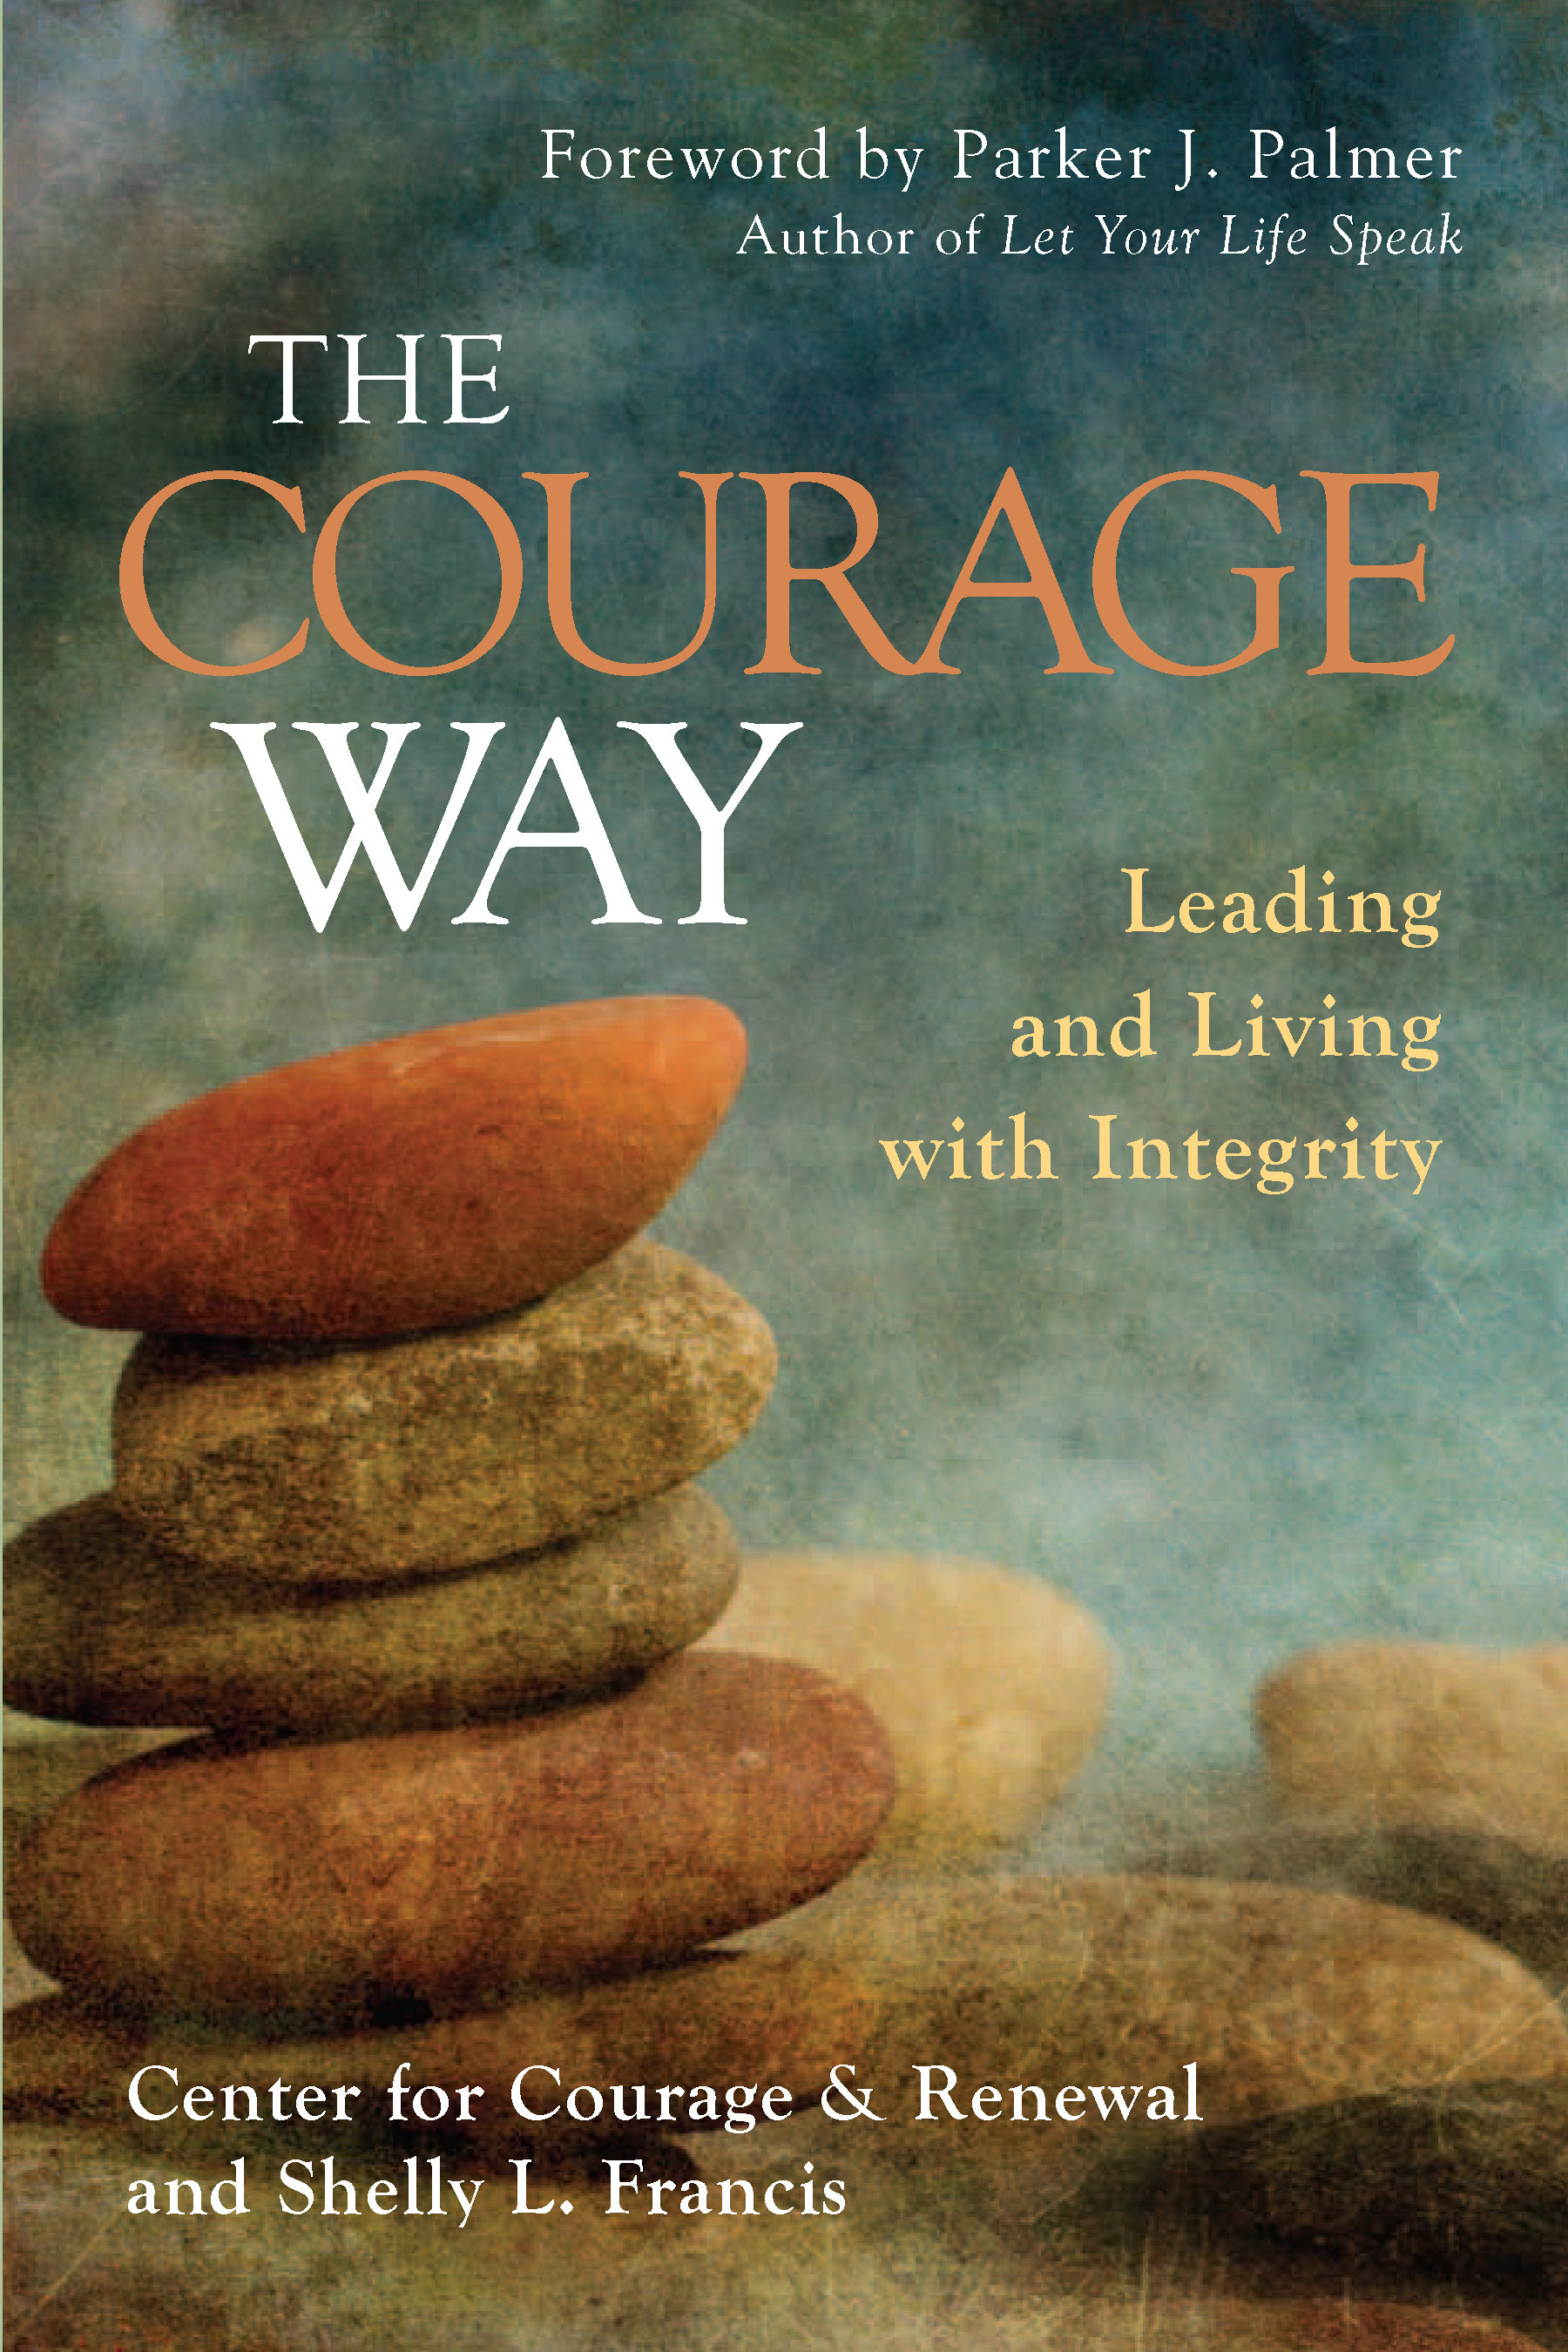 Francis-Courage Way-cover-stones stacked